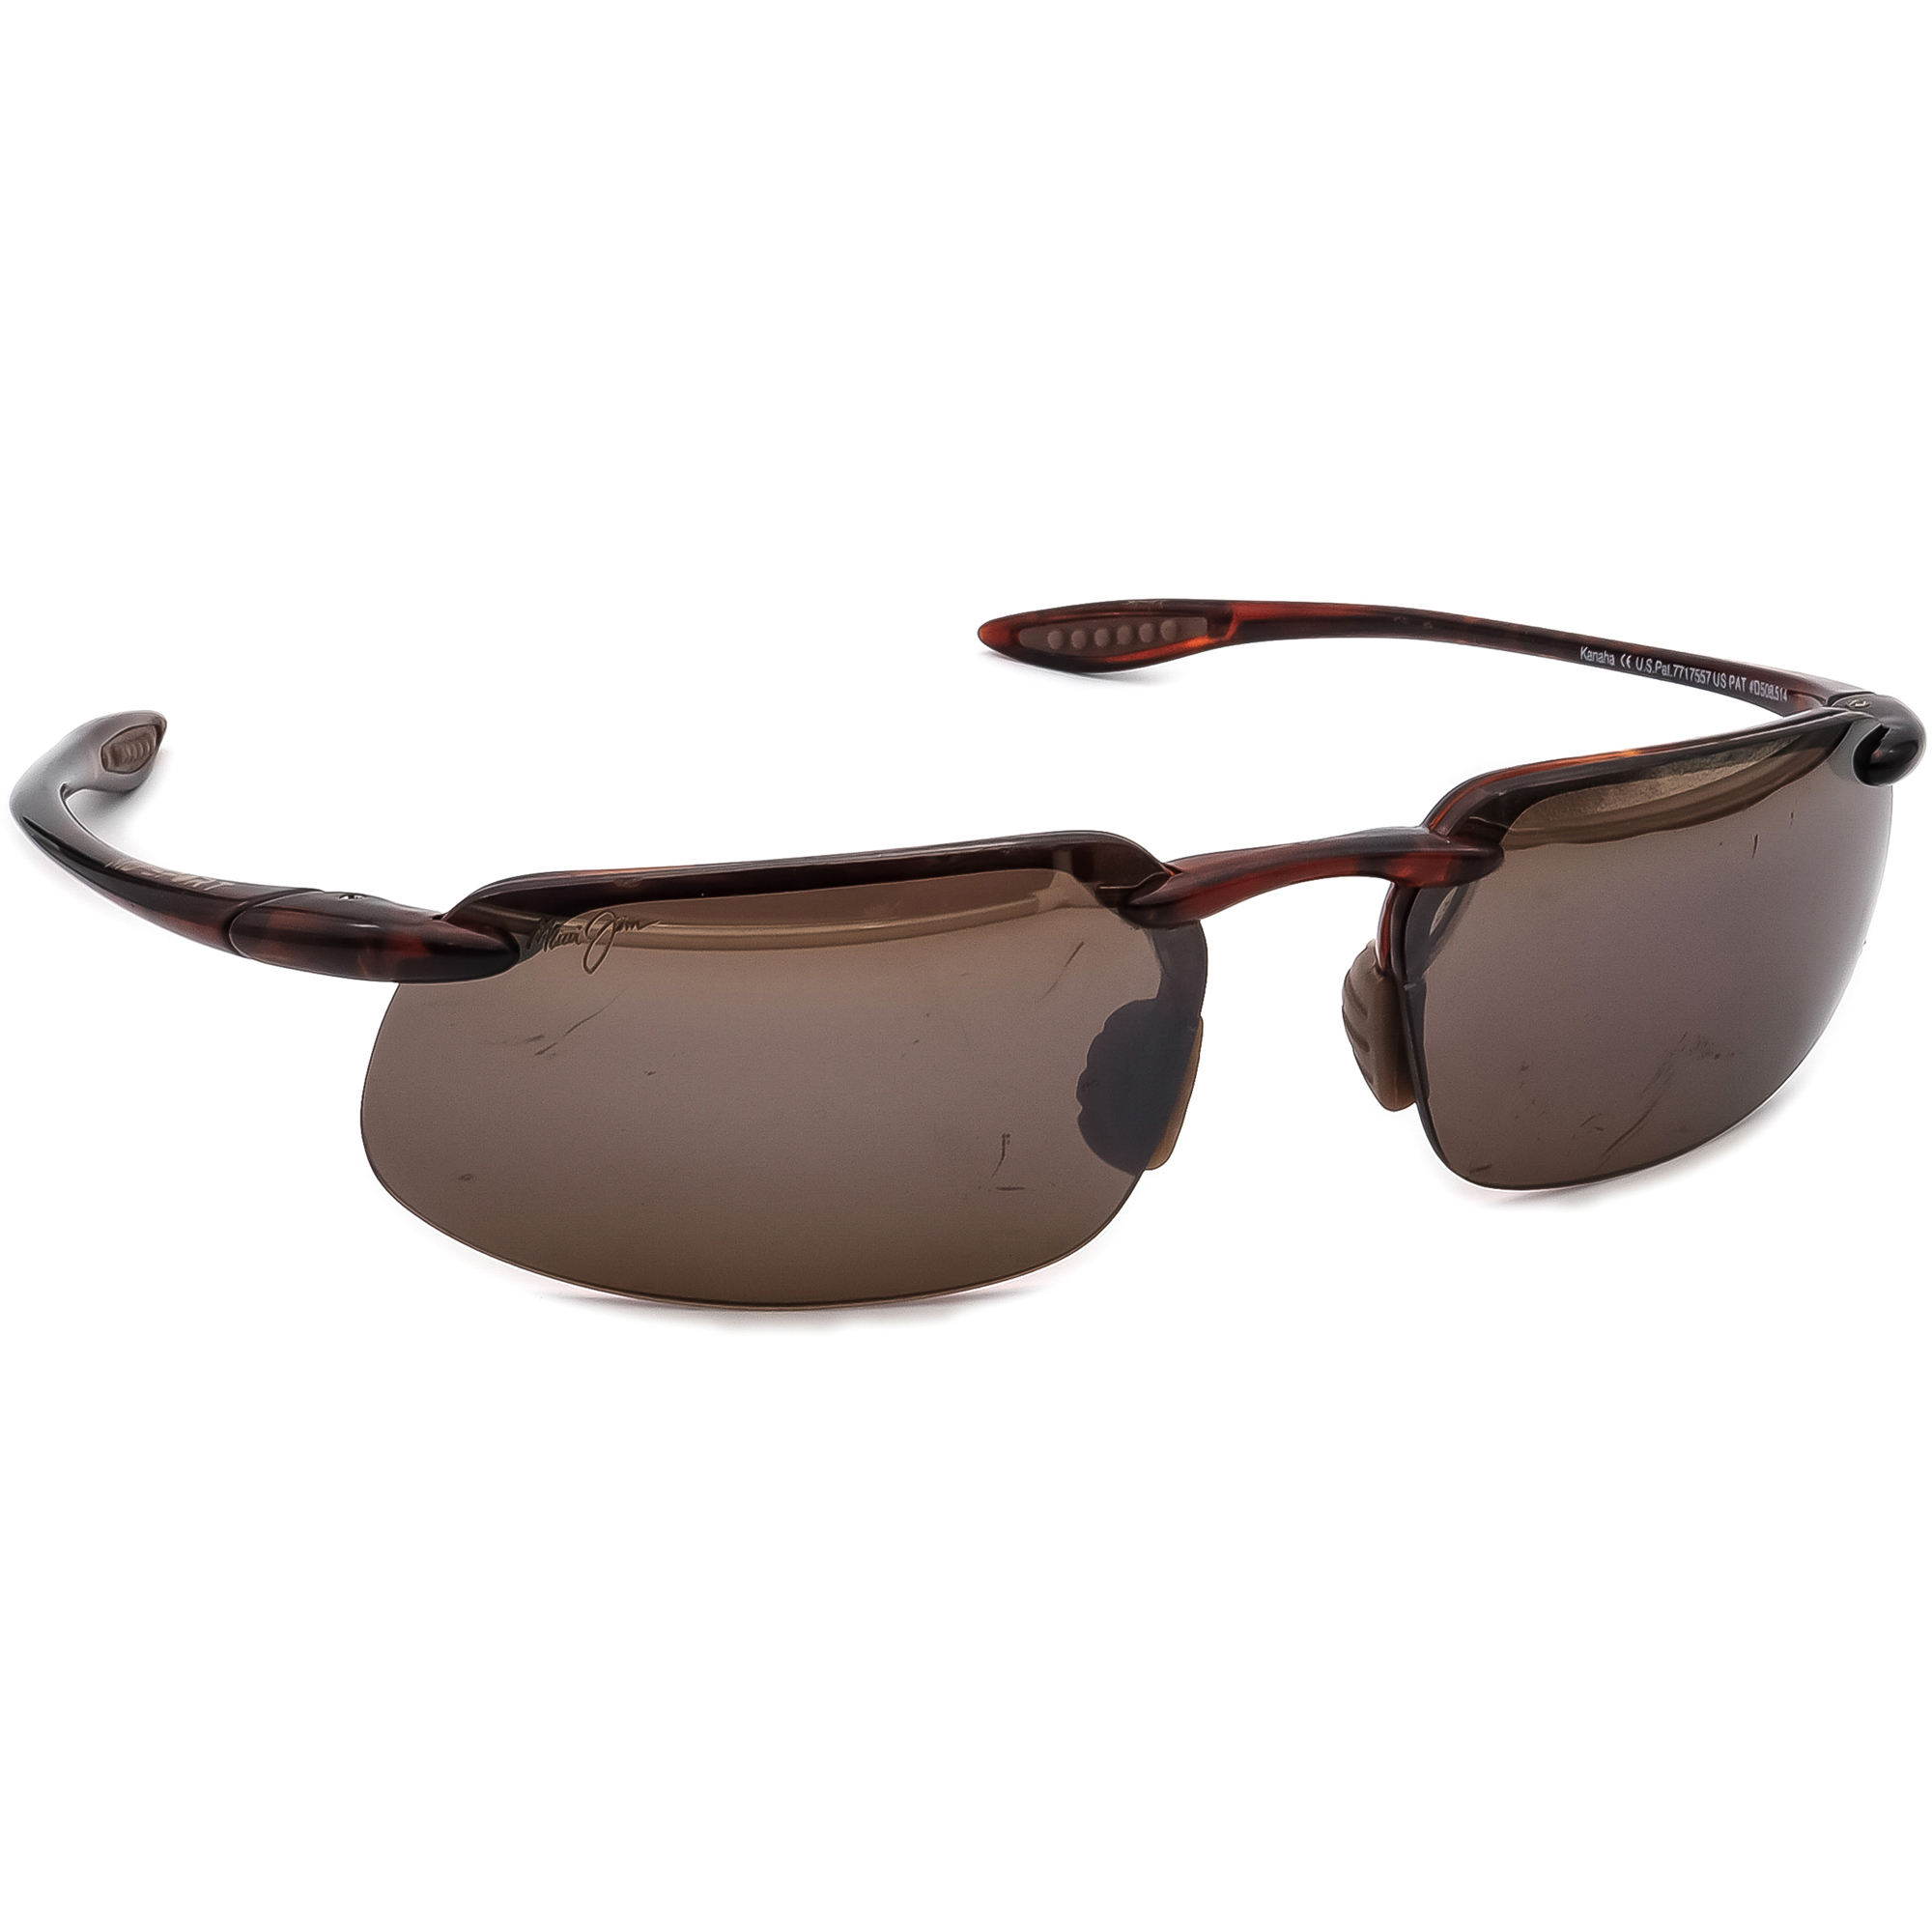 Maui Jim MJ-409-10 Sunglasses Frame Only